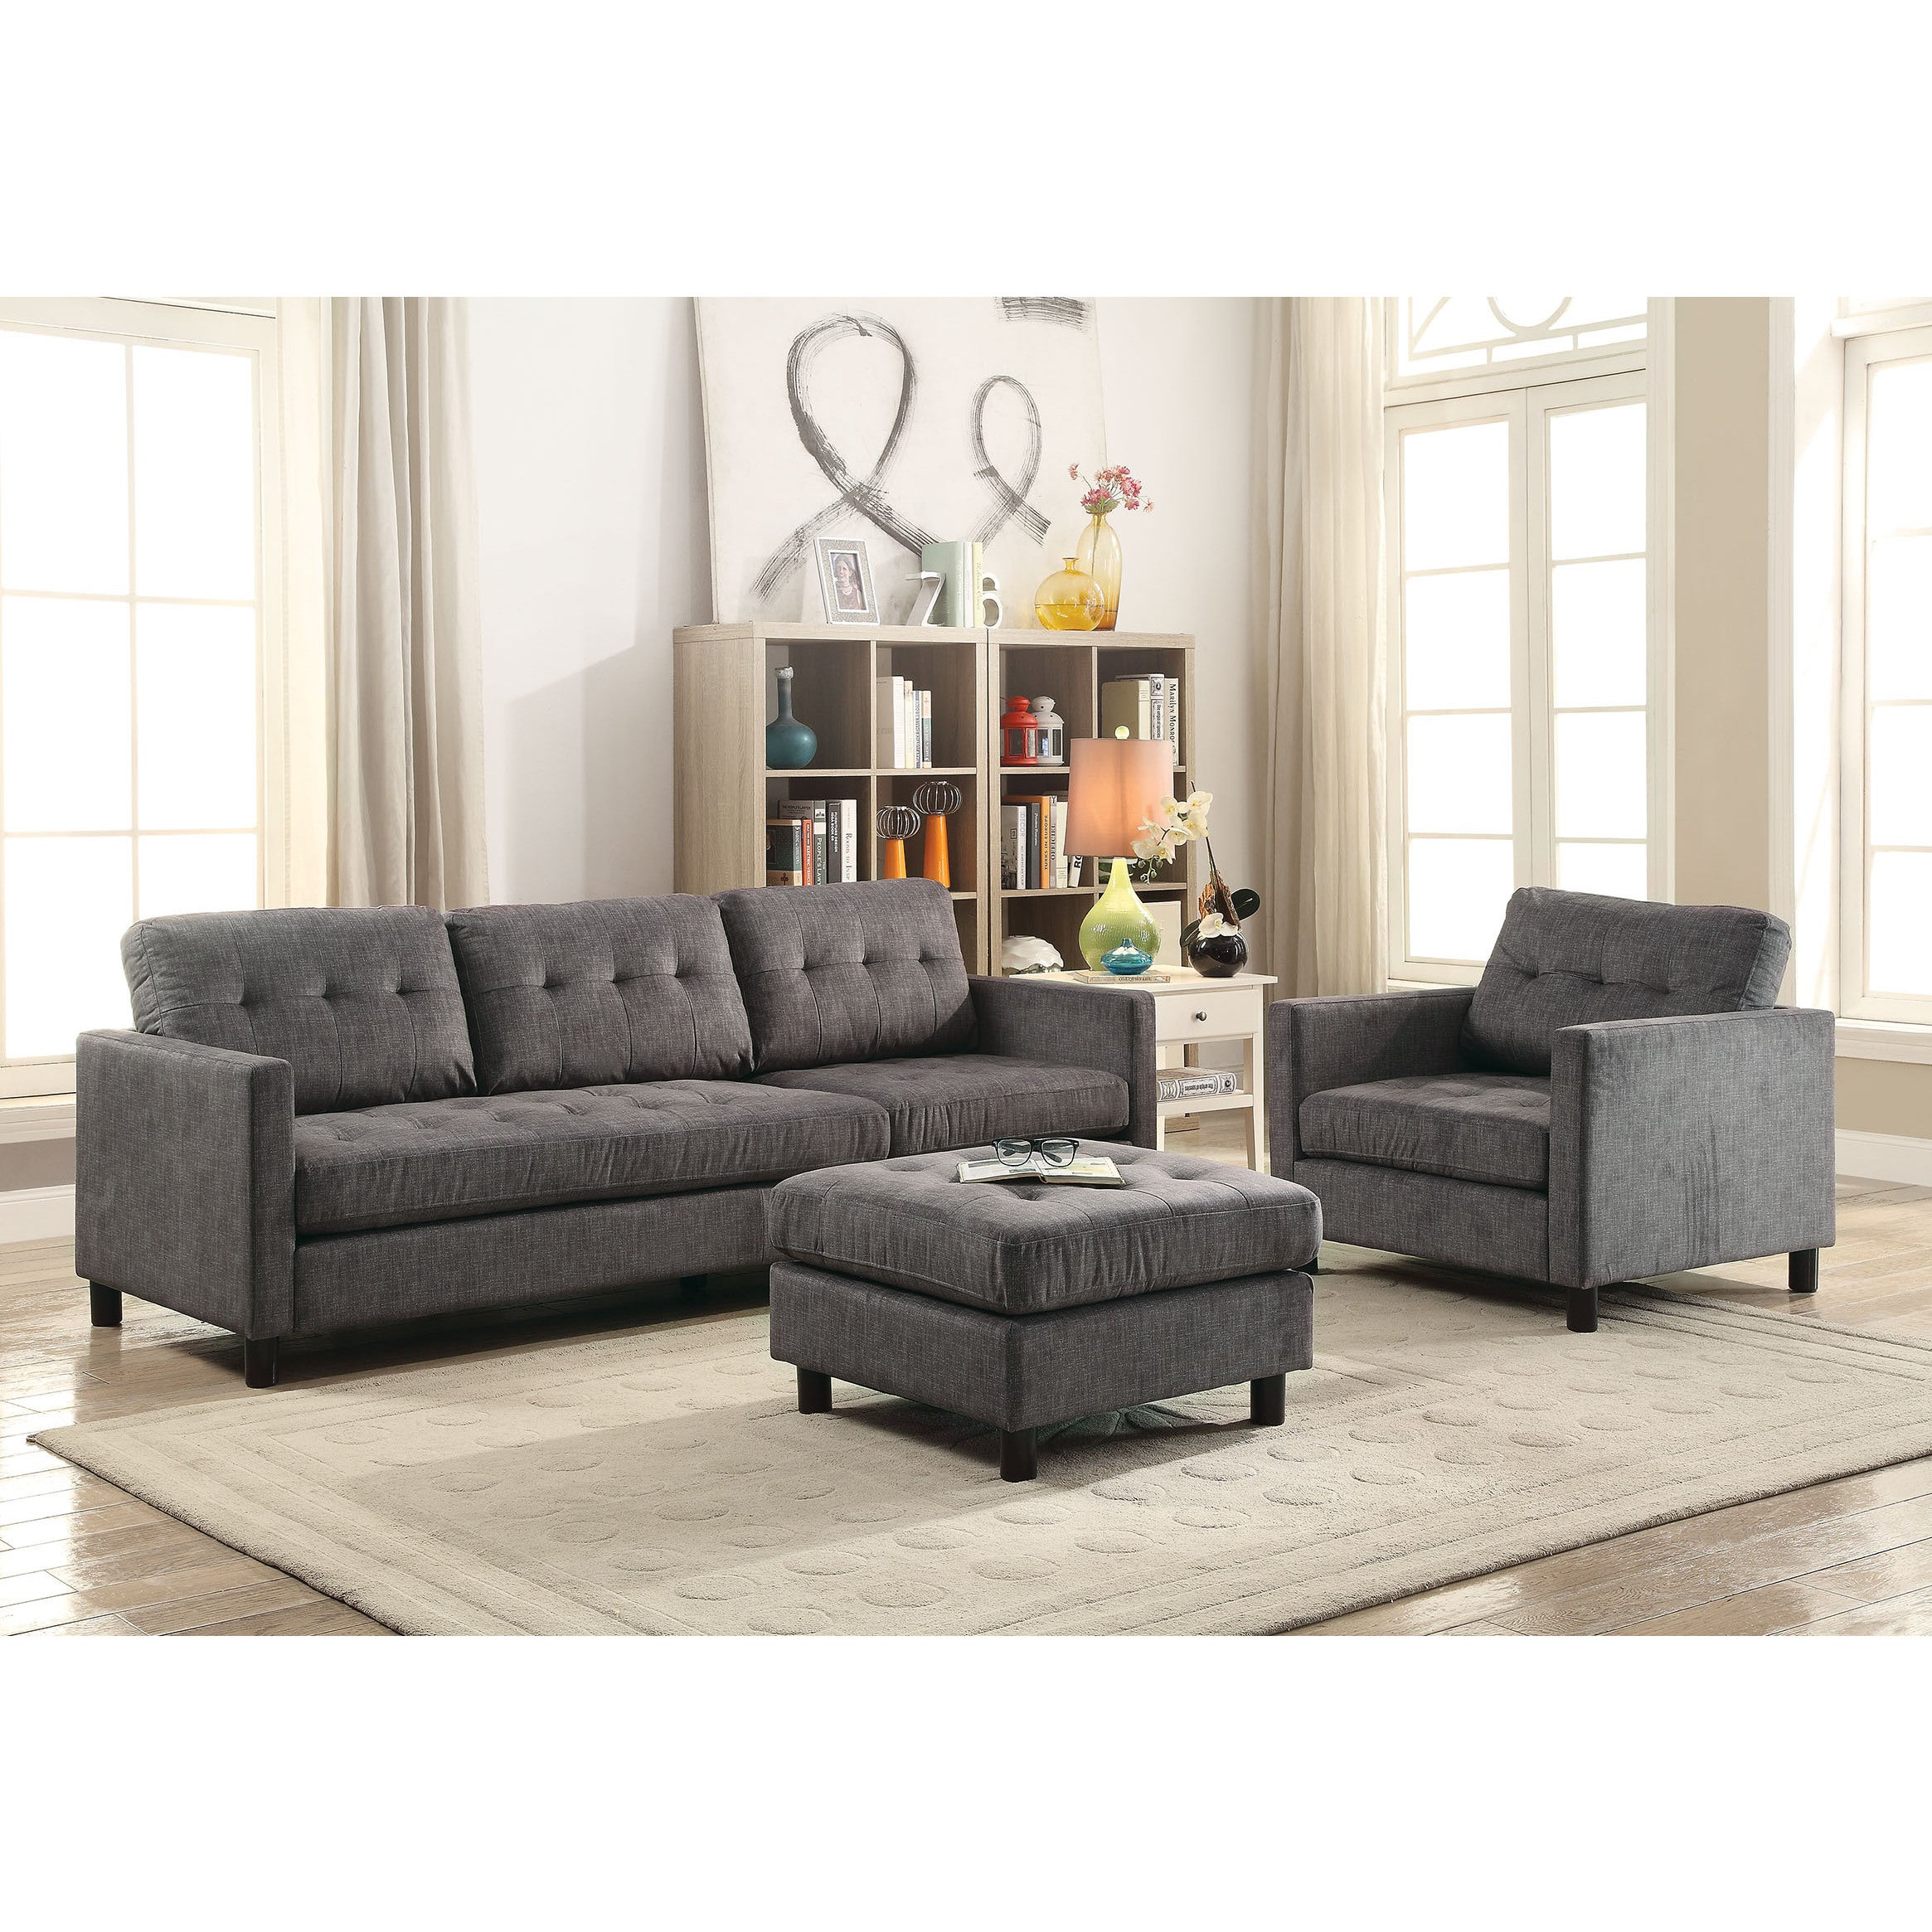 Shop Acme Furniture Ceasar Sectional Sofa U0026 Revisable Ottoman, Gray Fabric    Free Shipping Today   Overstock.com   15219959